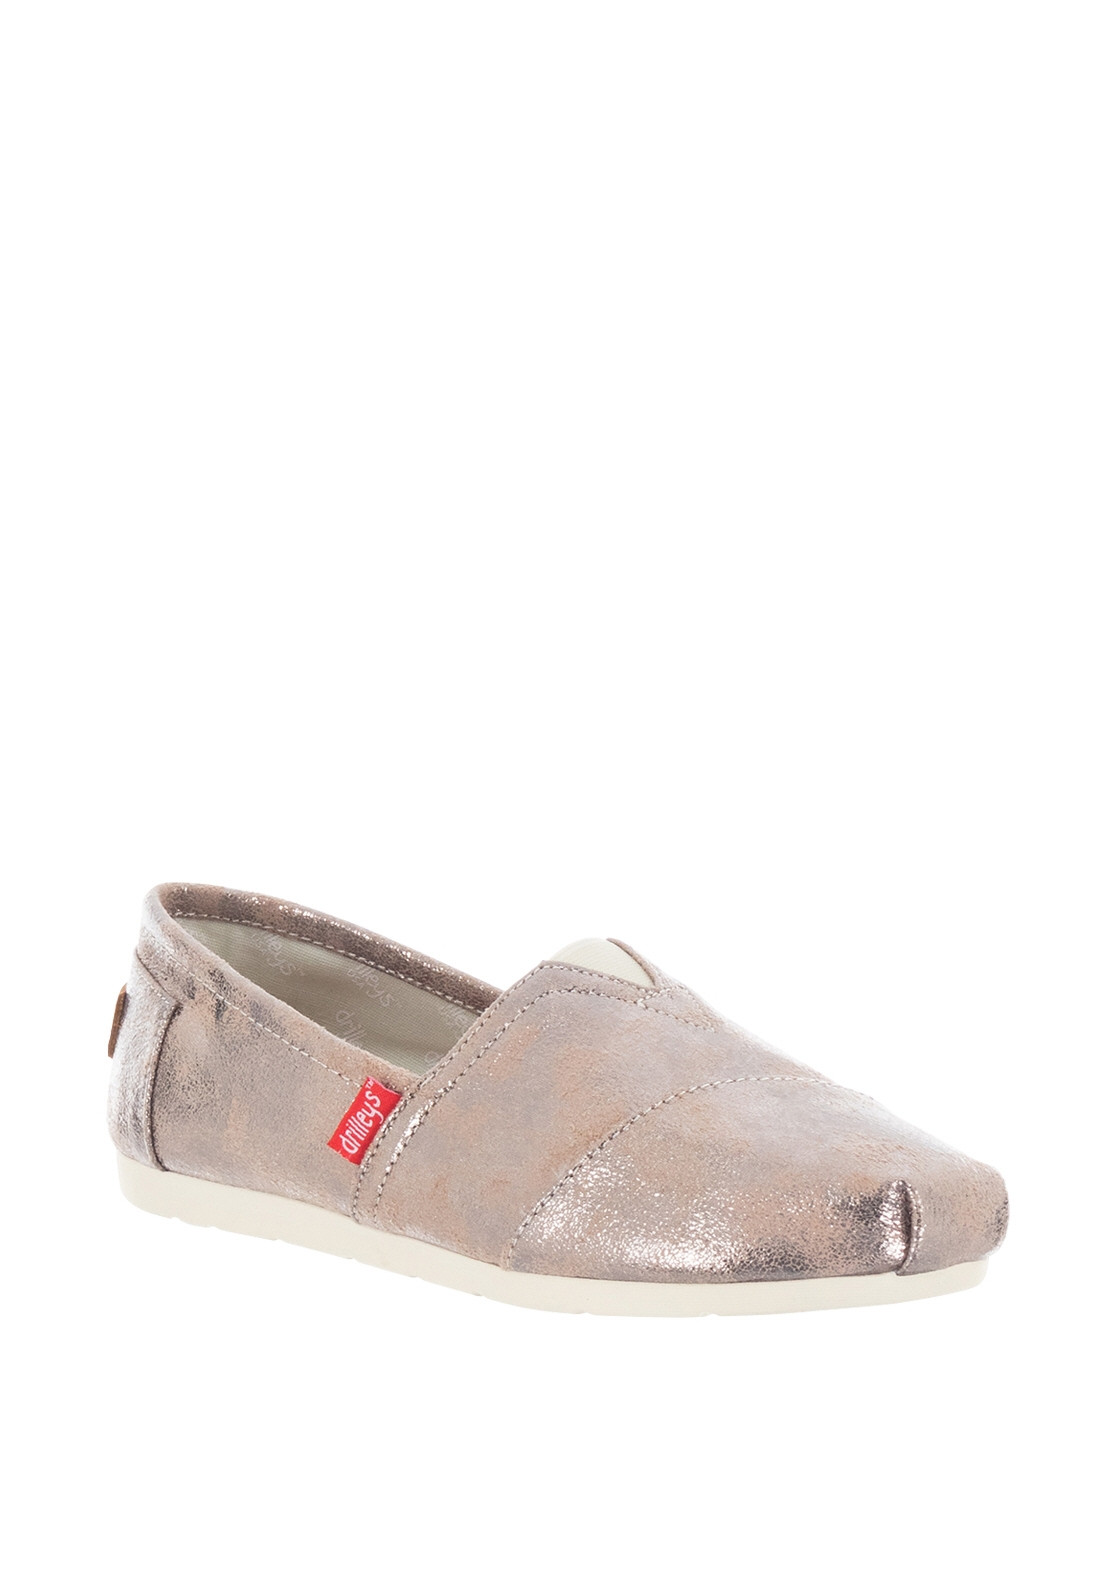 07de02a21ea0ec Zanni Drilleys Wash Canvas Slip on Shoes, Bronze | McElhinneys